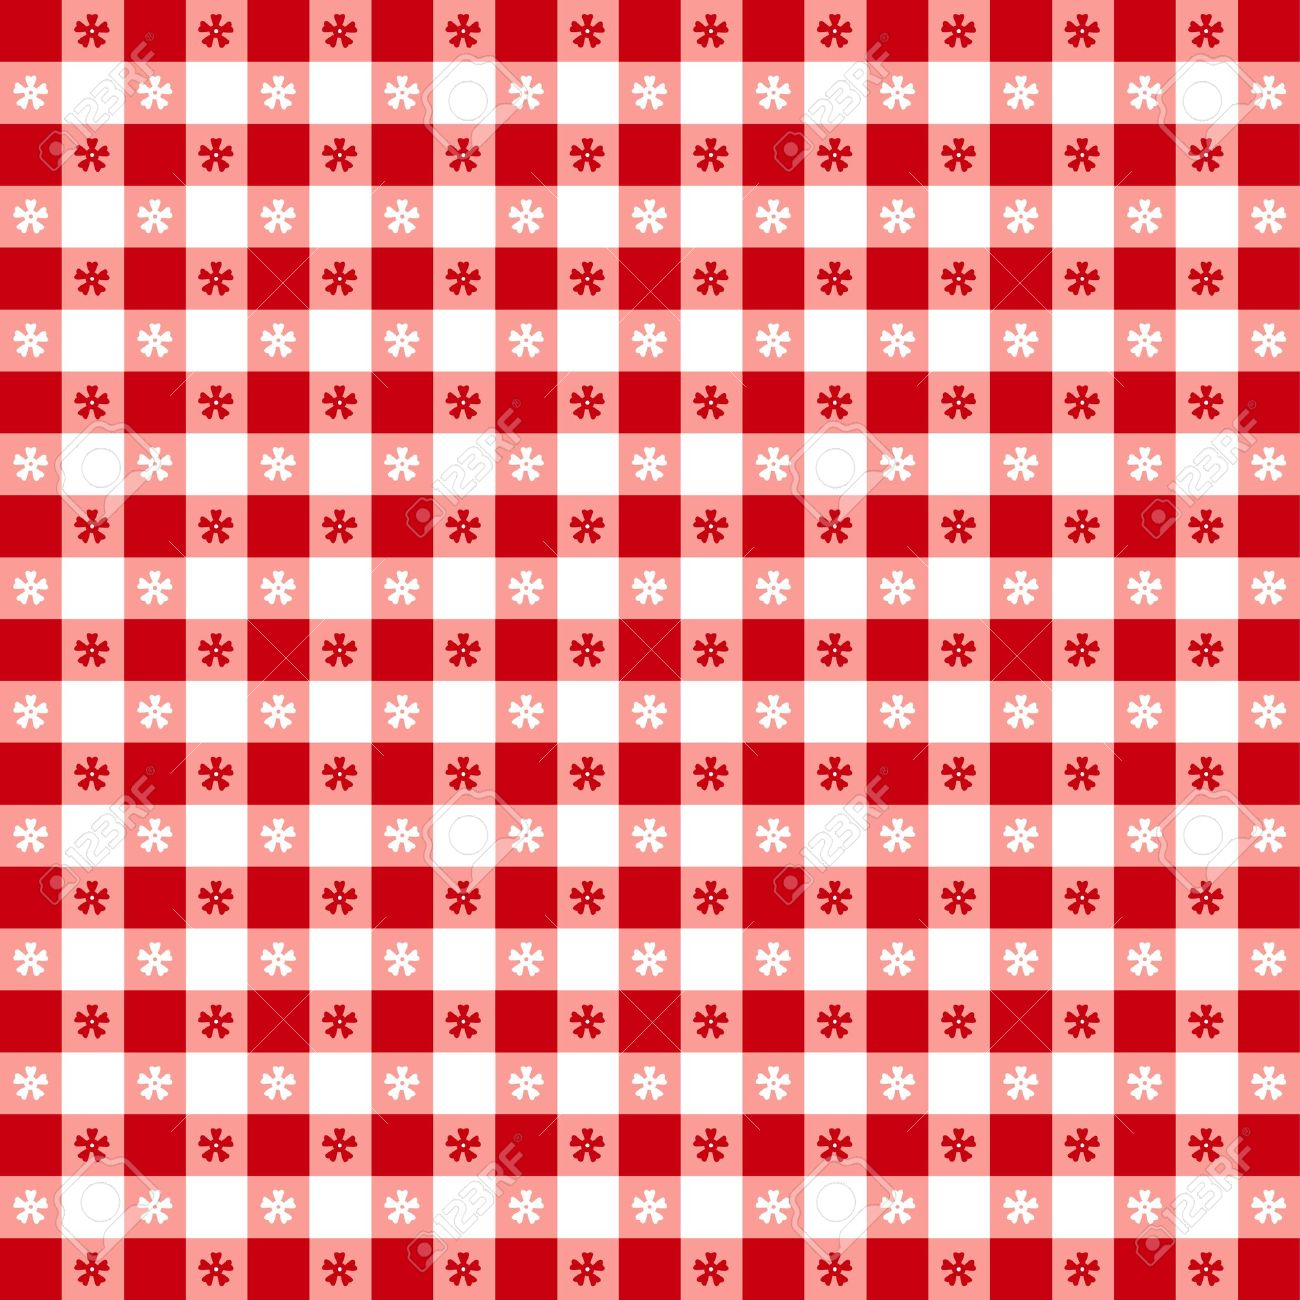 Seamless tablecloth pattern, red gingham check  EPS8 file includes pattern swatch that will seamlessly fill any shape  For picnics, restaurants, cafes, bistros, home decorating, arts, crafts, scrapbooks, albums Stock Vector - 13043248